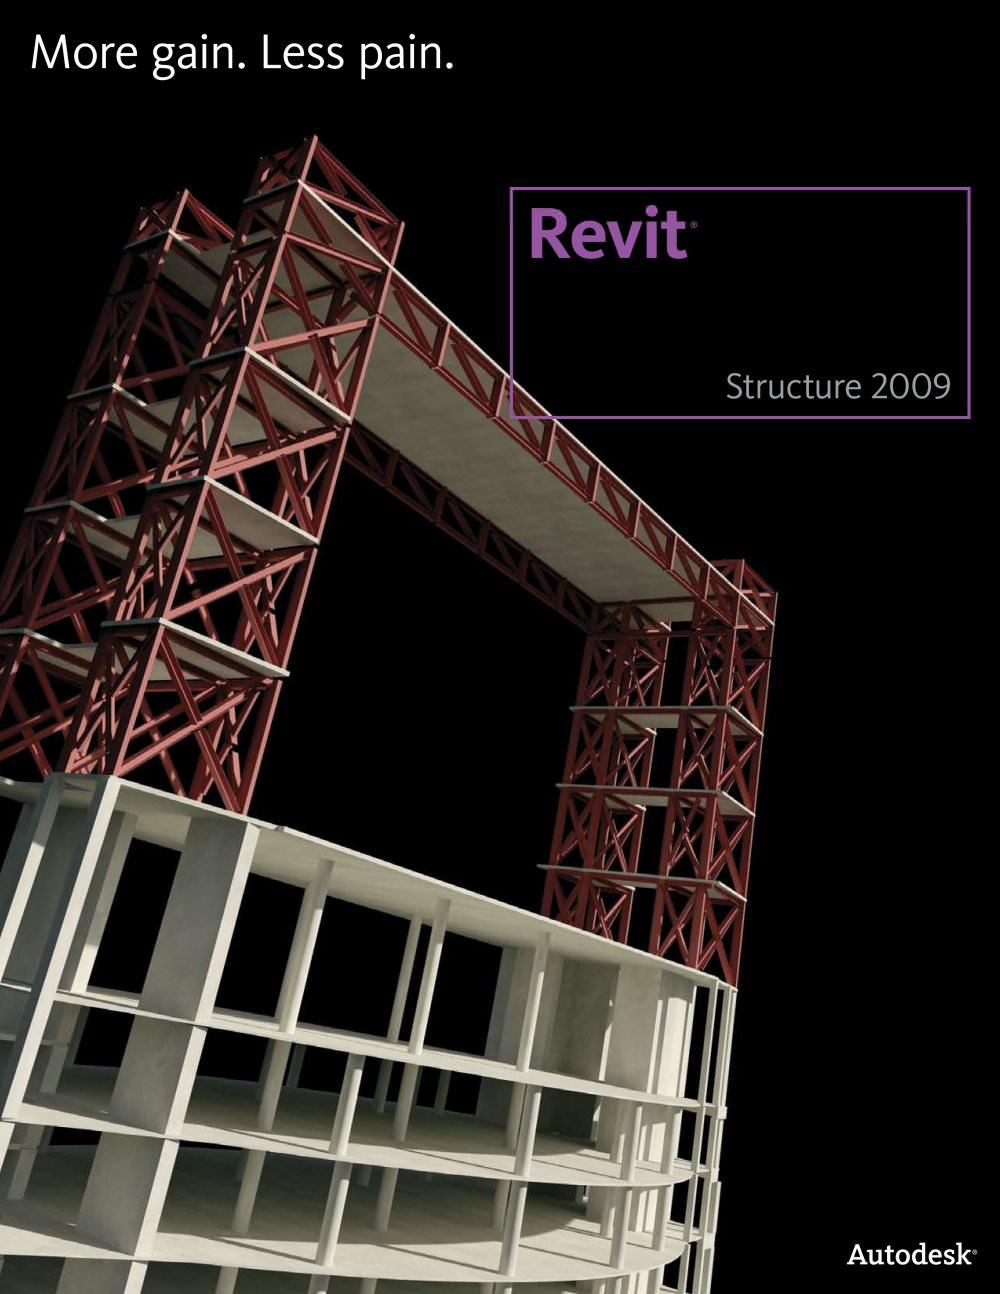 Pdf autodesk 2011 manual revit architecture